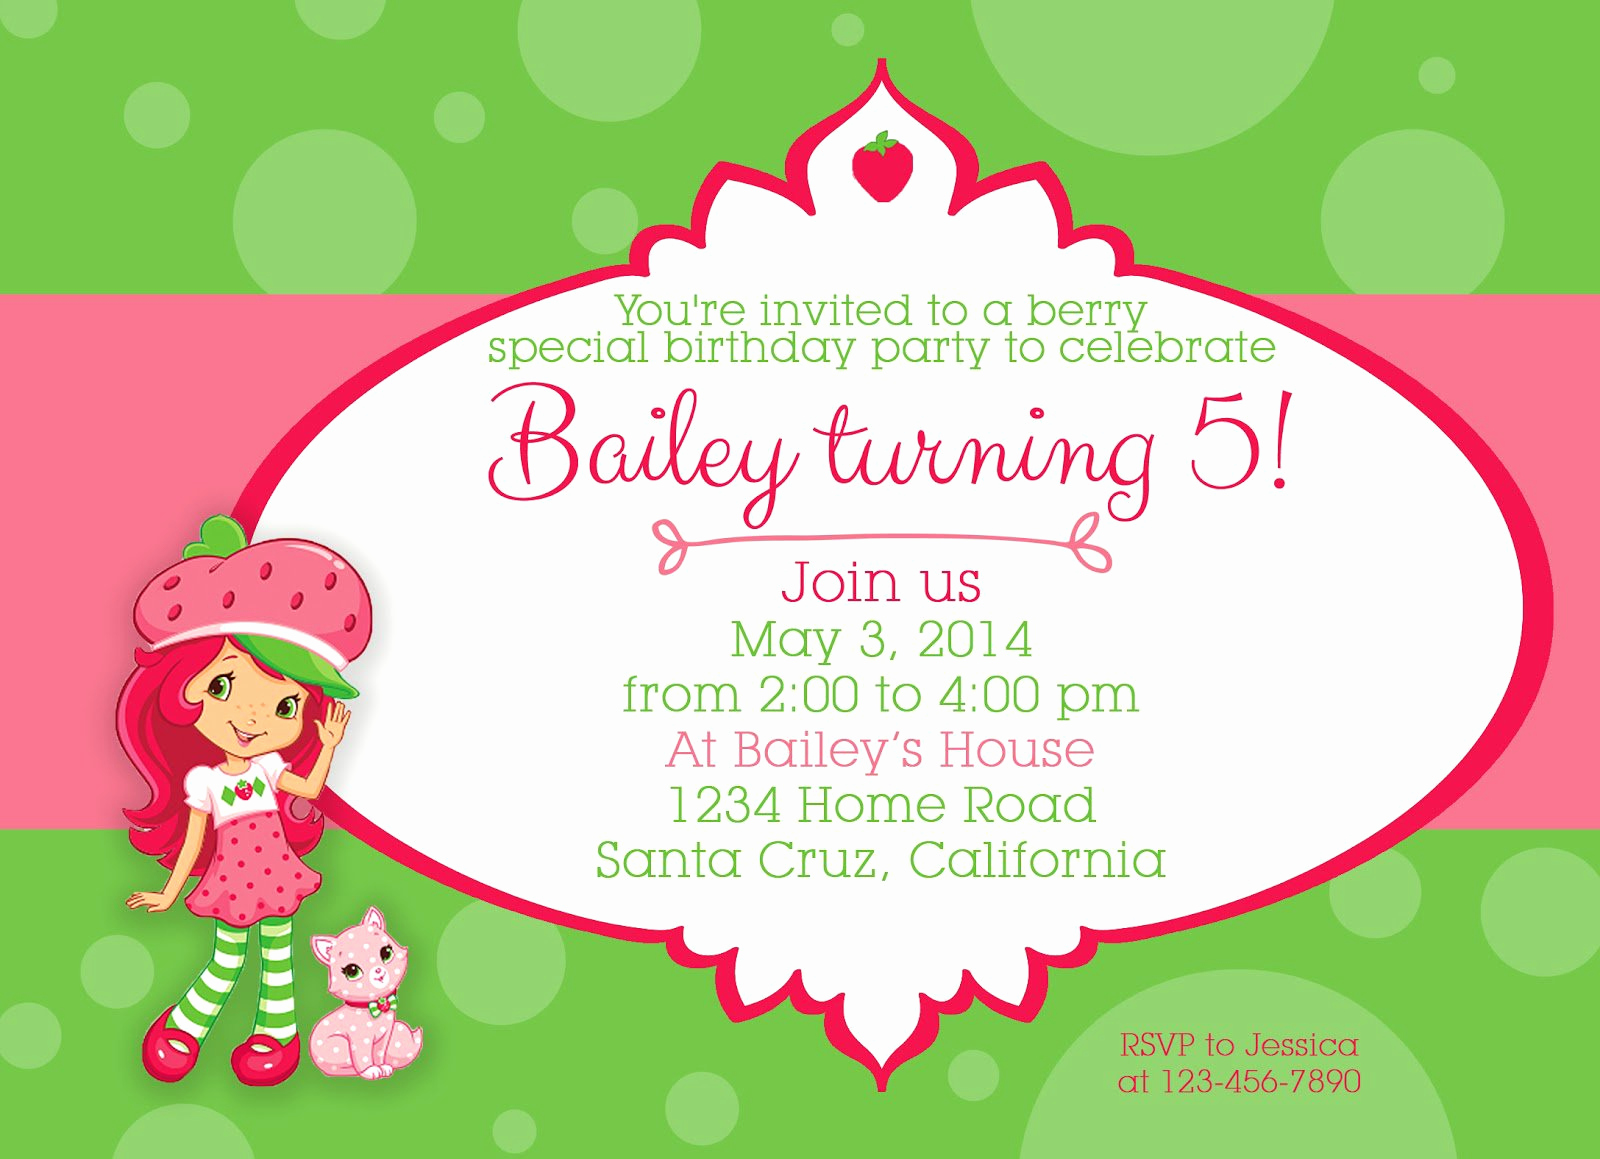 Strawberry Shortcake Invitation Template Free Unique Strawberry Shortcake Birthday Invitations